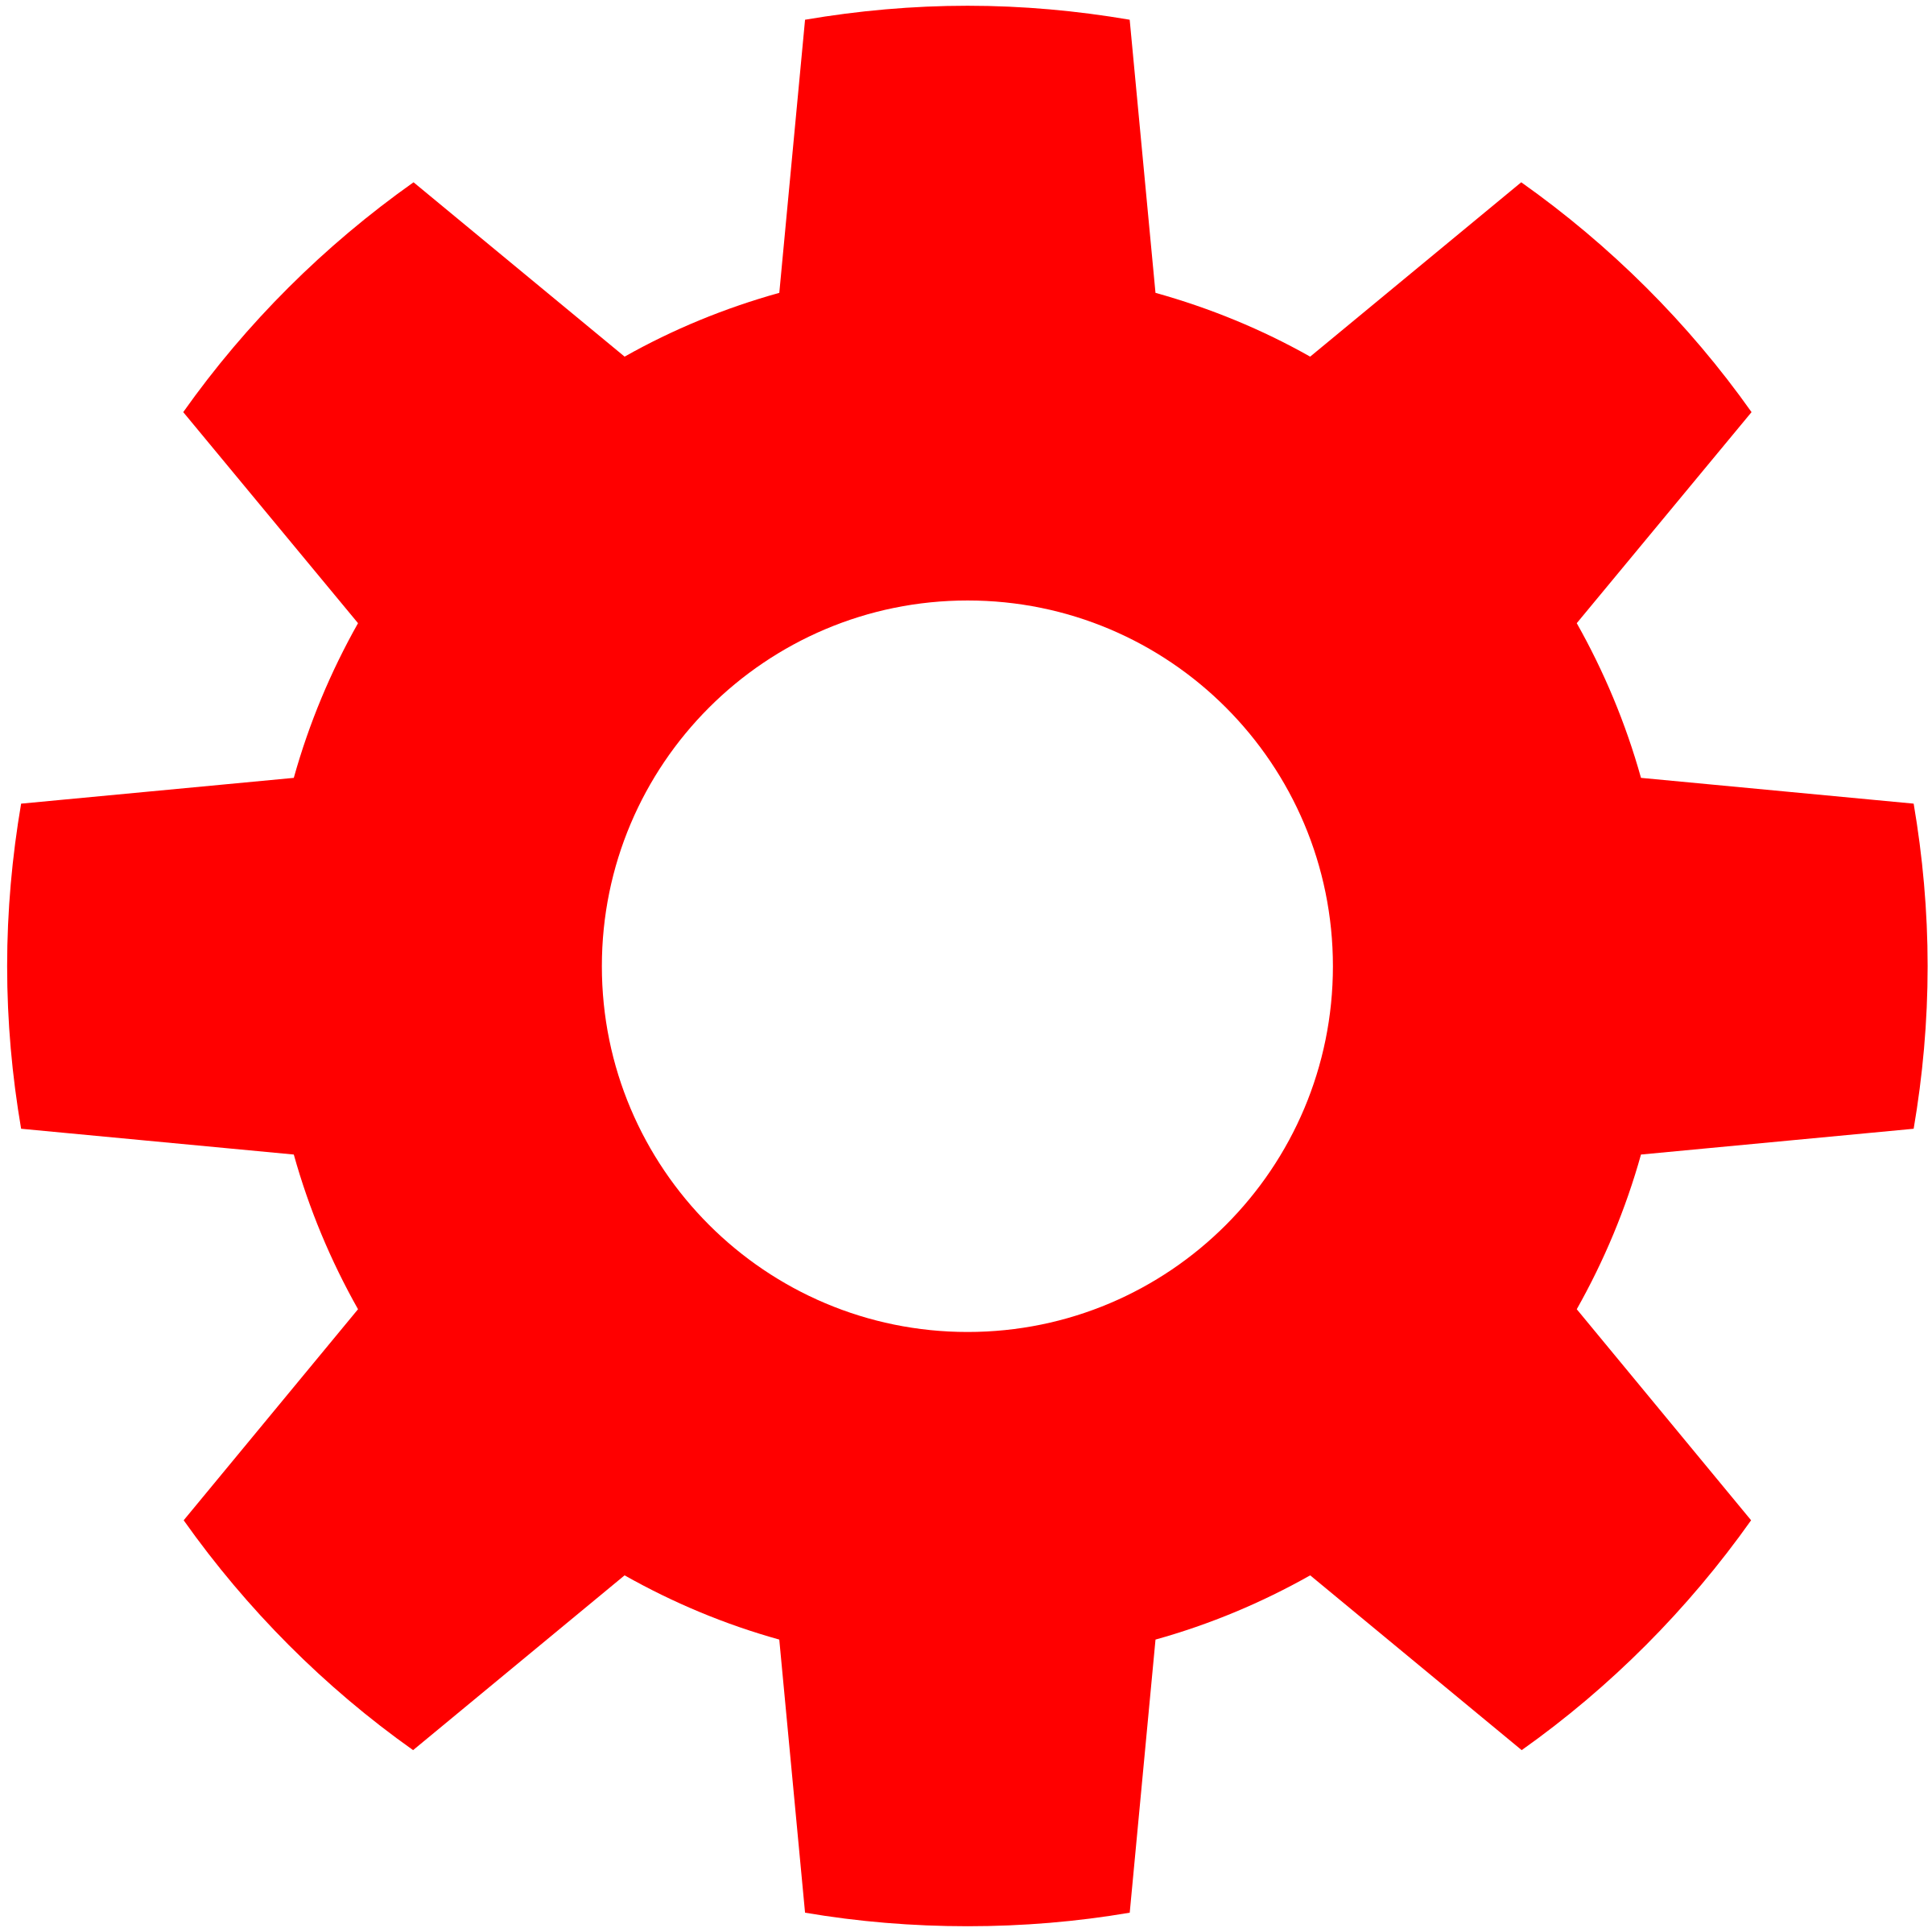 Gear clipart red. In big image png